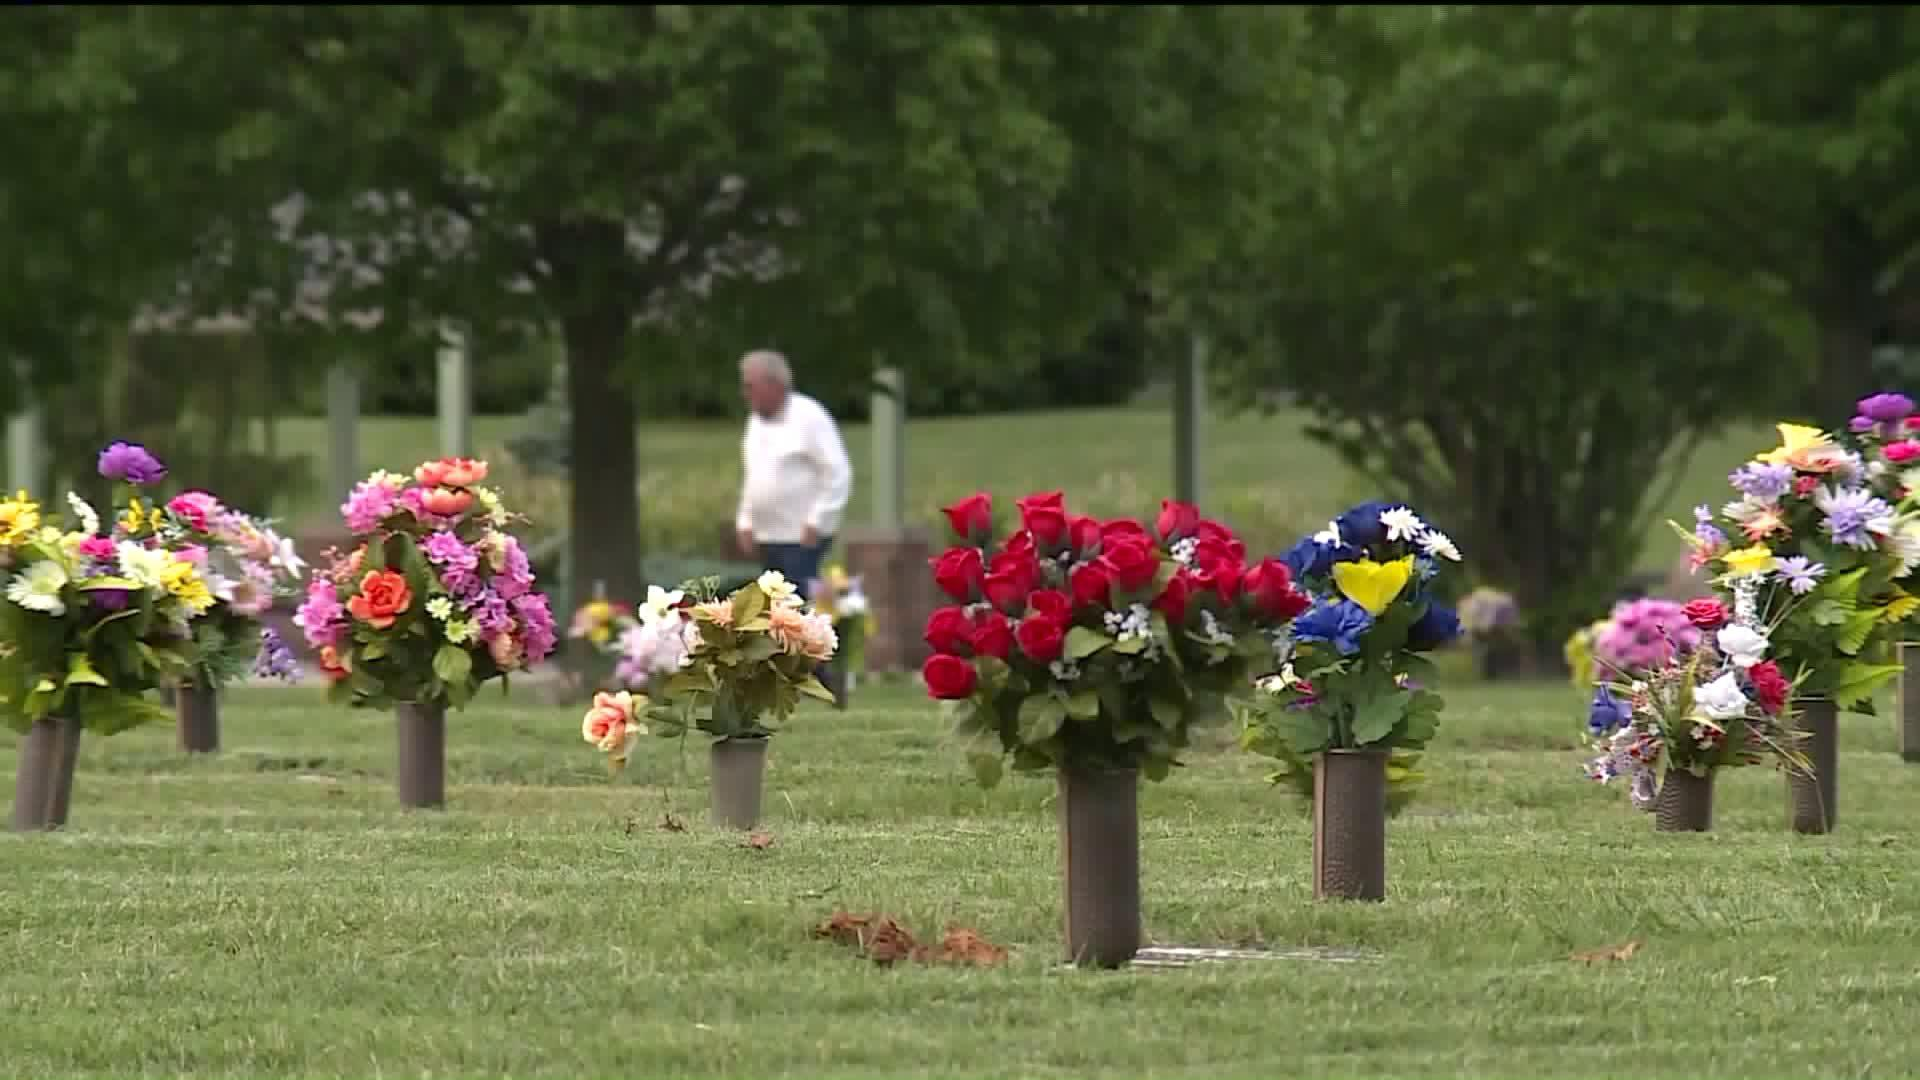 Thieves Are Preying on Grieving Families Who Leave Home to Bury Loved Ones, Police Say